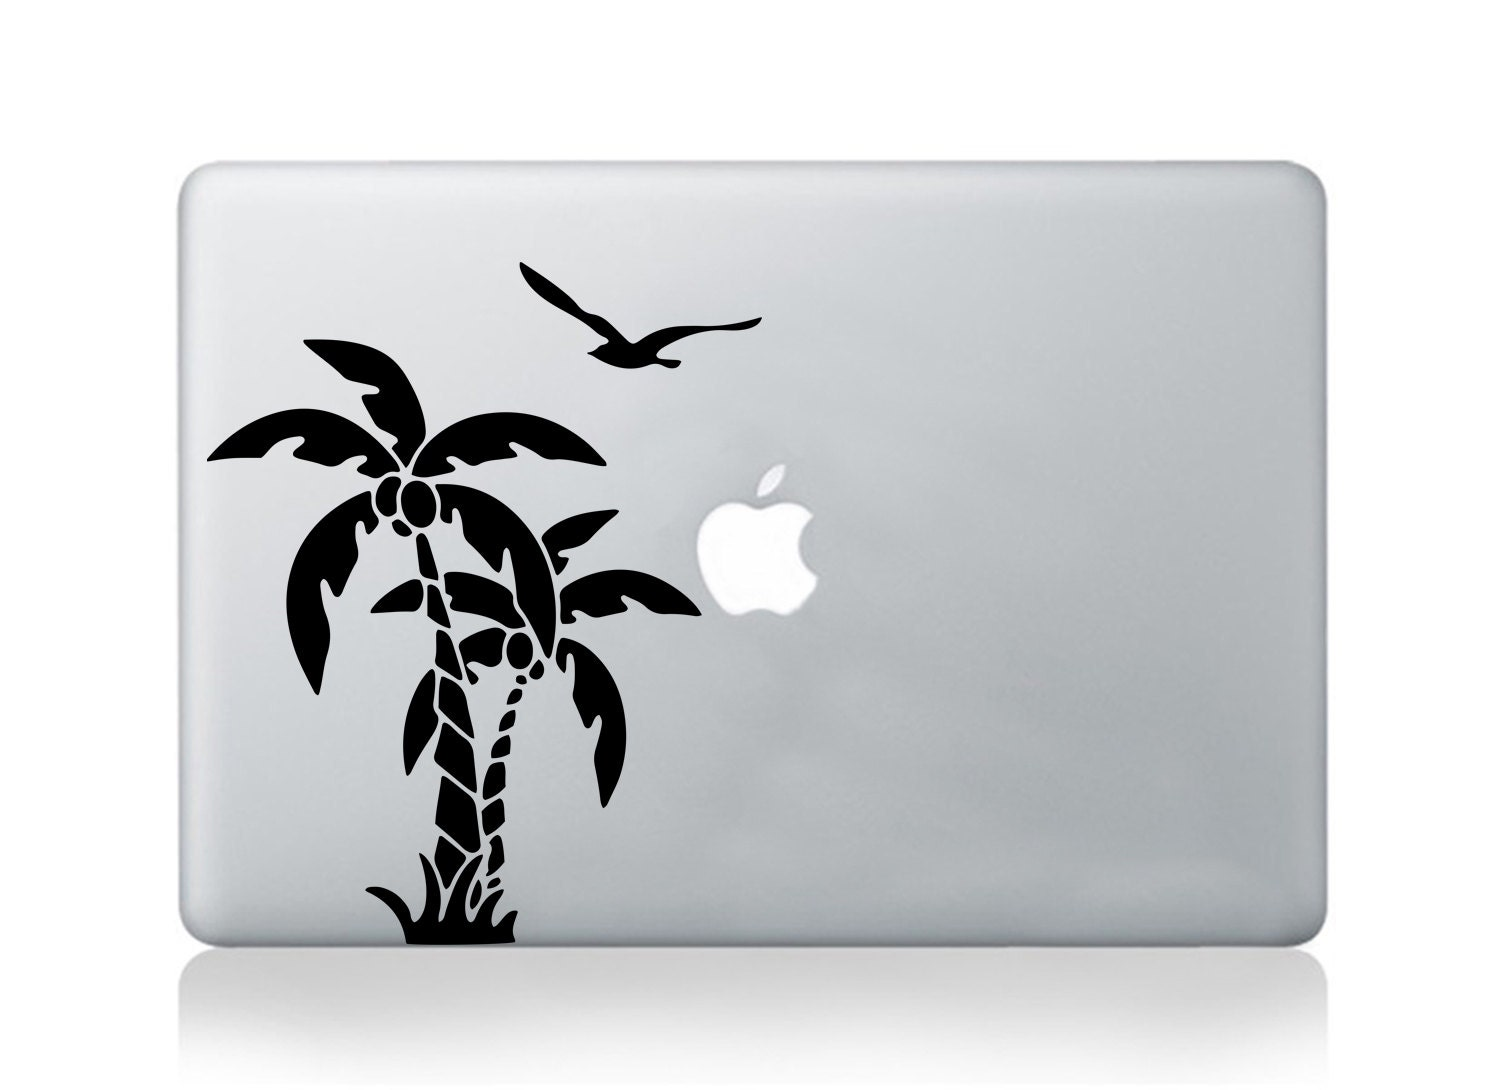 Macbook decal palm tree vinyl sticker sunset beach decal transfer graphic laptop notebook skin Asus HP Toshiba Dell decal